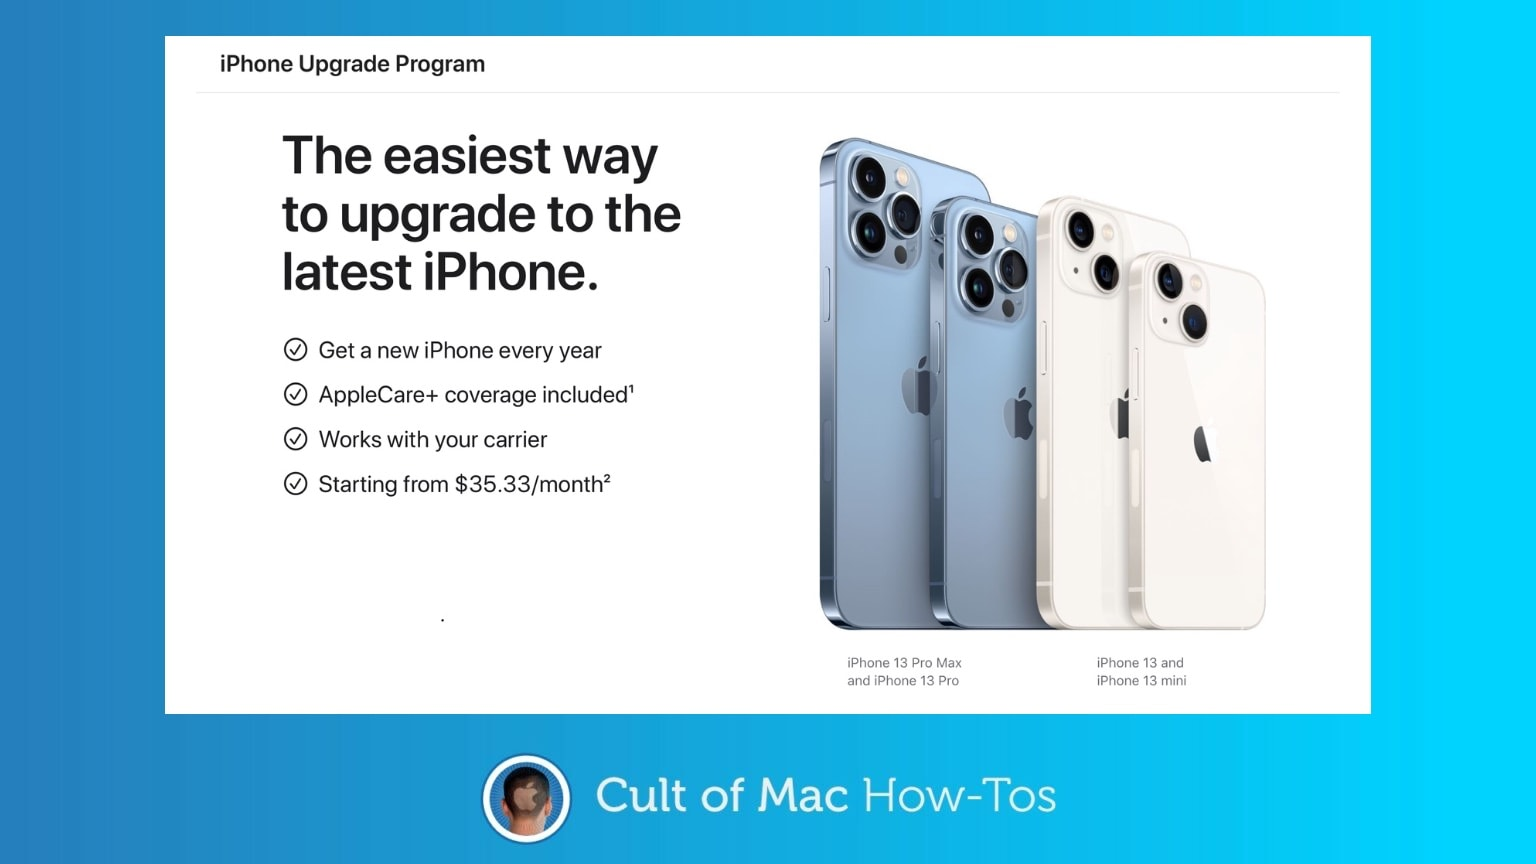 How to get ready to pre-order iPhone 13 with the iPhone Upgrade Program